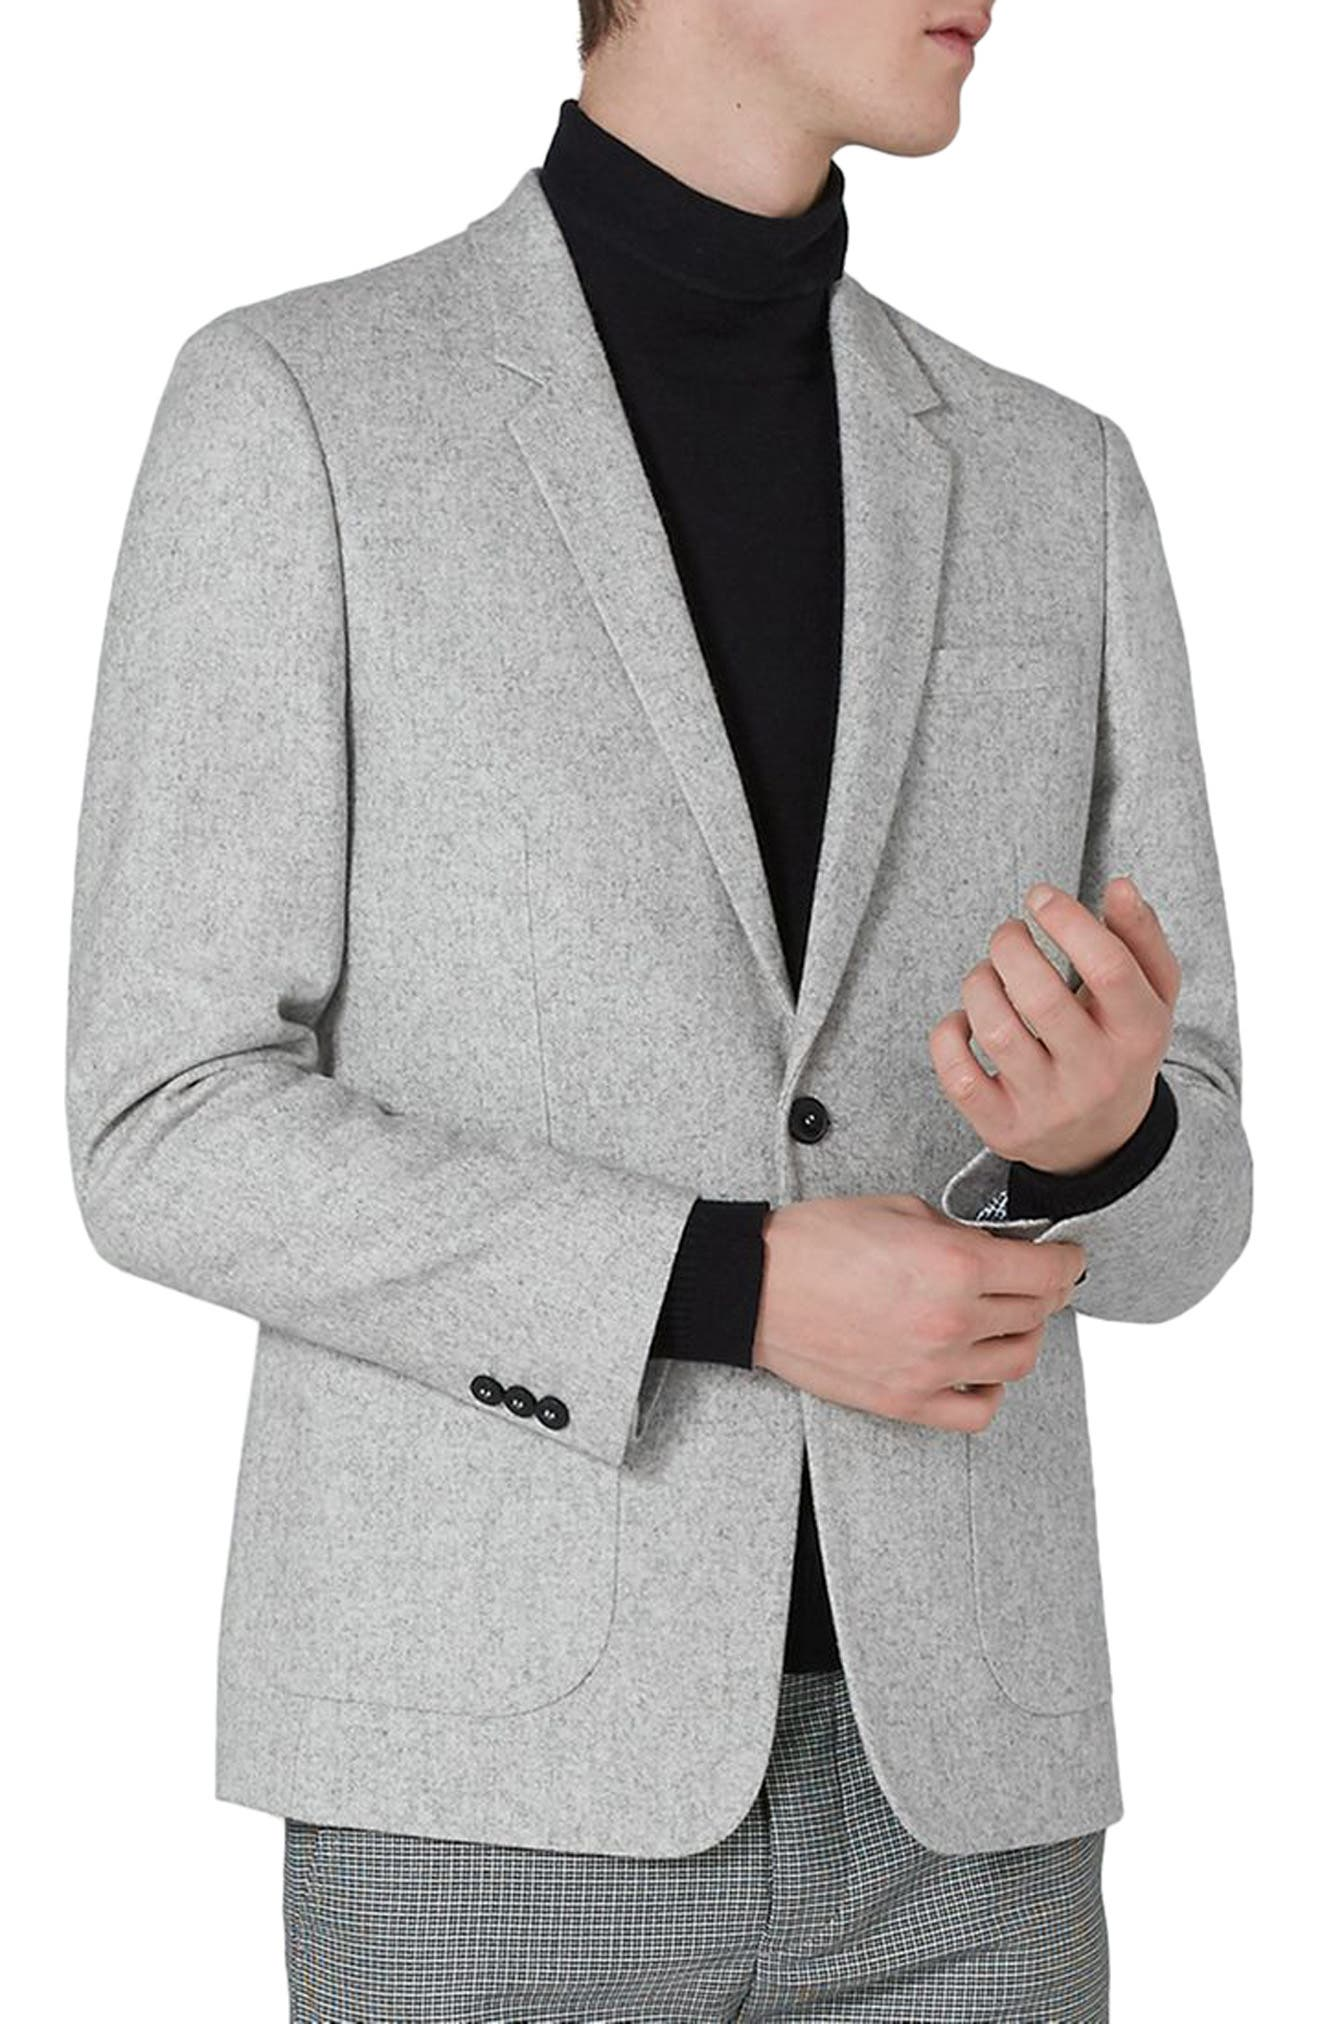 Topman Murdoch One-Button Jacket